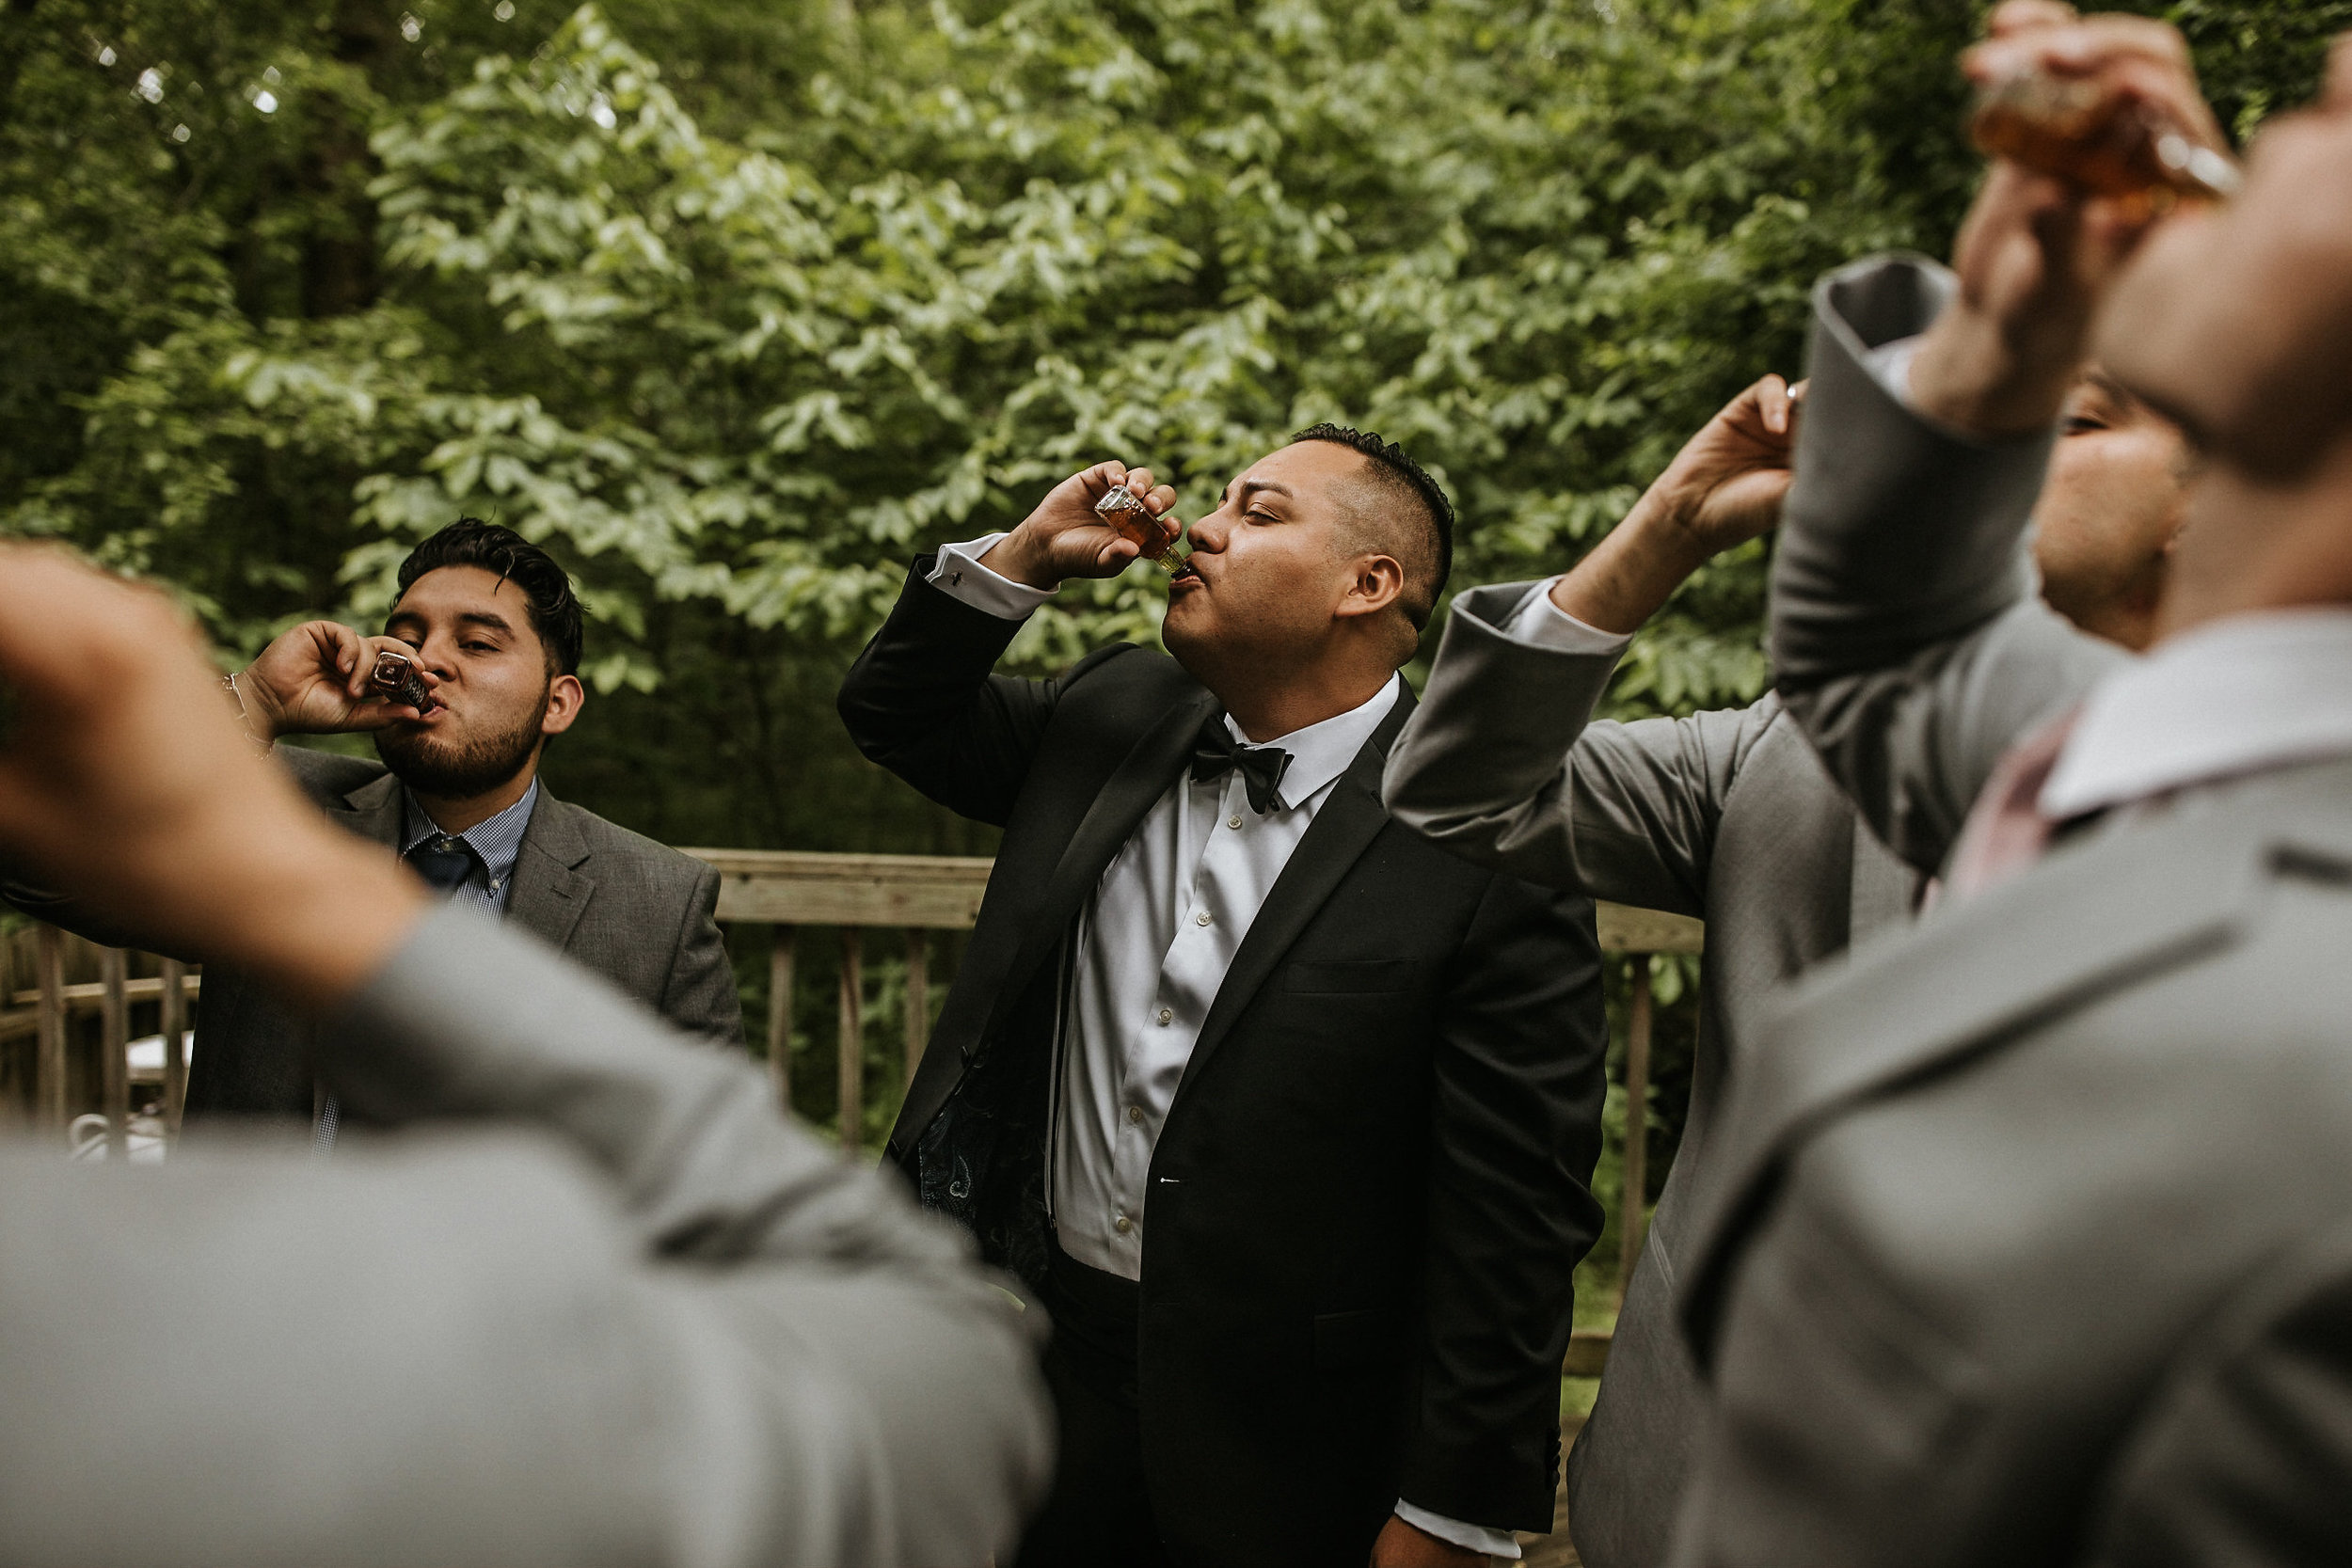 Grooms share shots before wedding